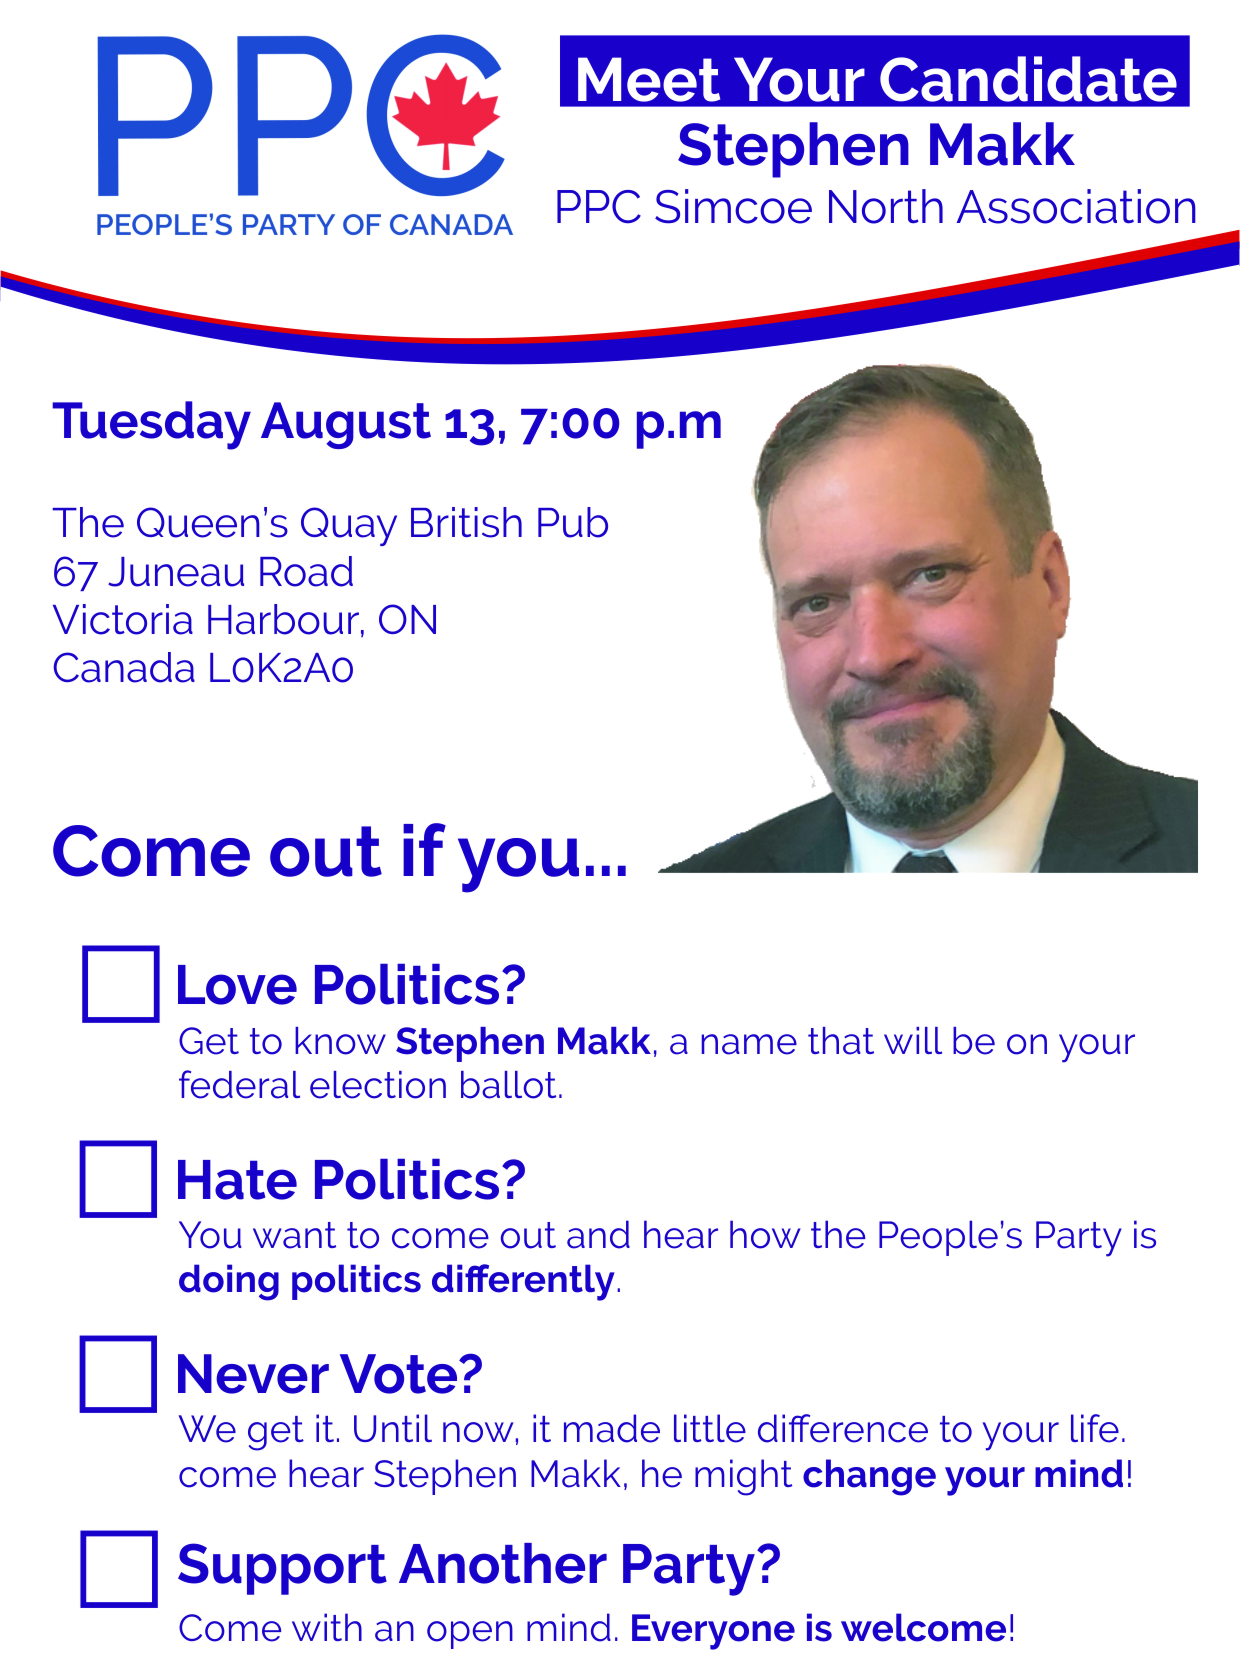 Meet The Candidate Aug 13 Flyer